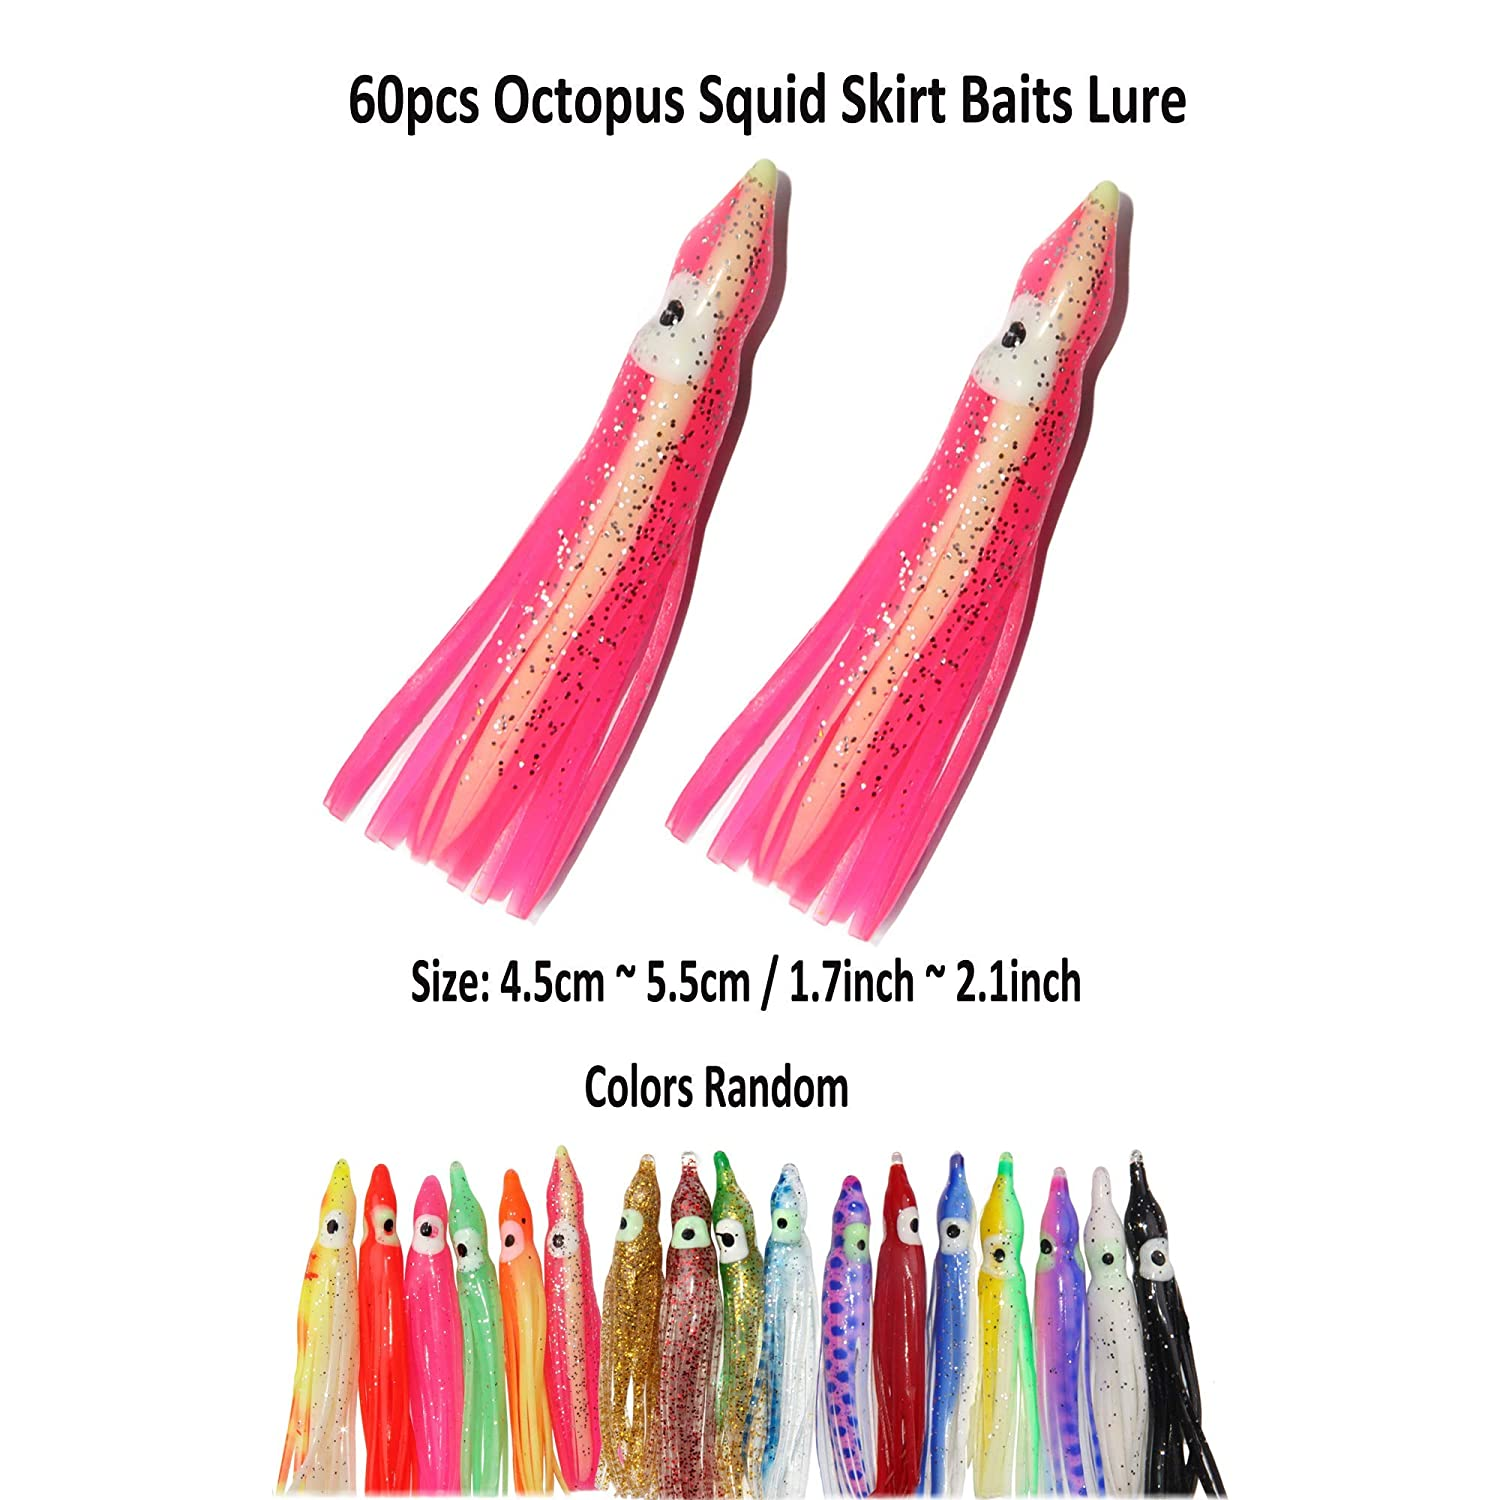 50pcs Squid Octopus Lures 1.97inch~4.72inch Trolling Jig Artificial Soft Plastic Lure Baits Assorted Color Hoochies Saltwater Fishing Lure